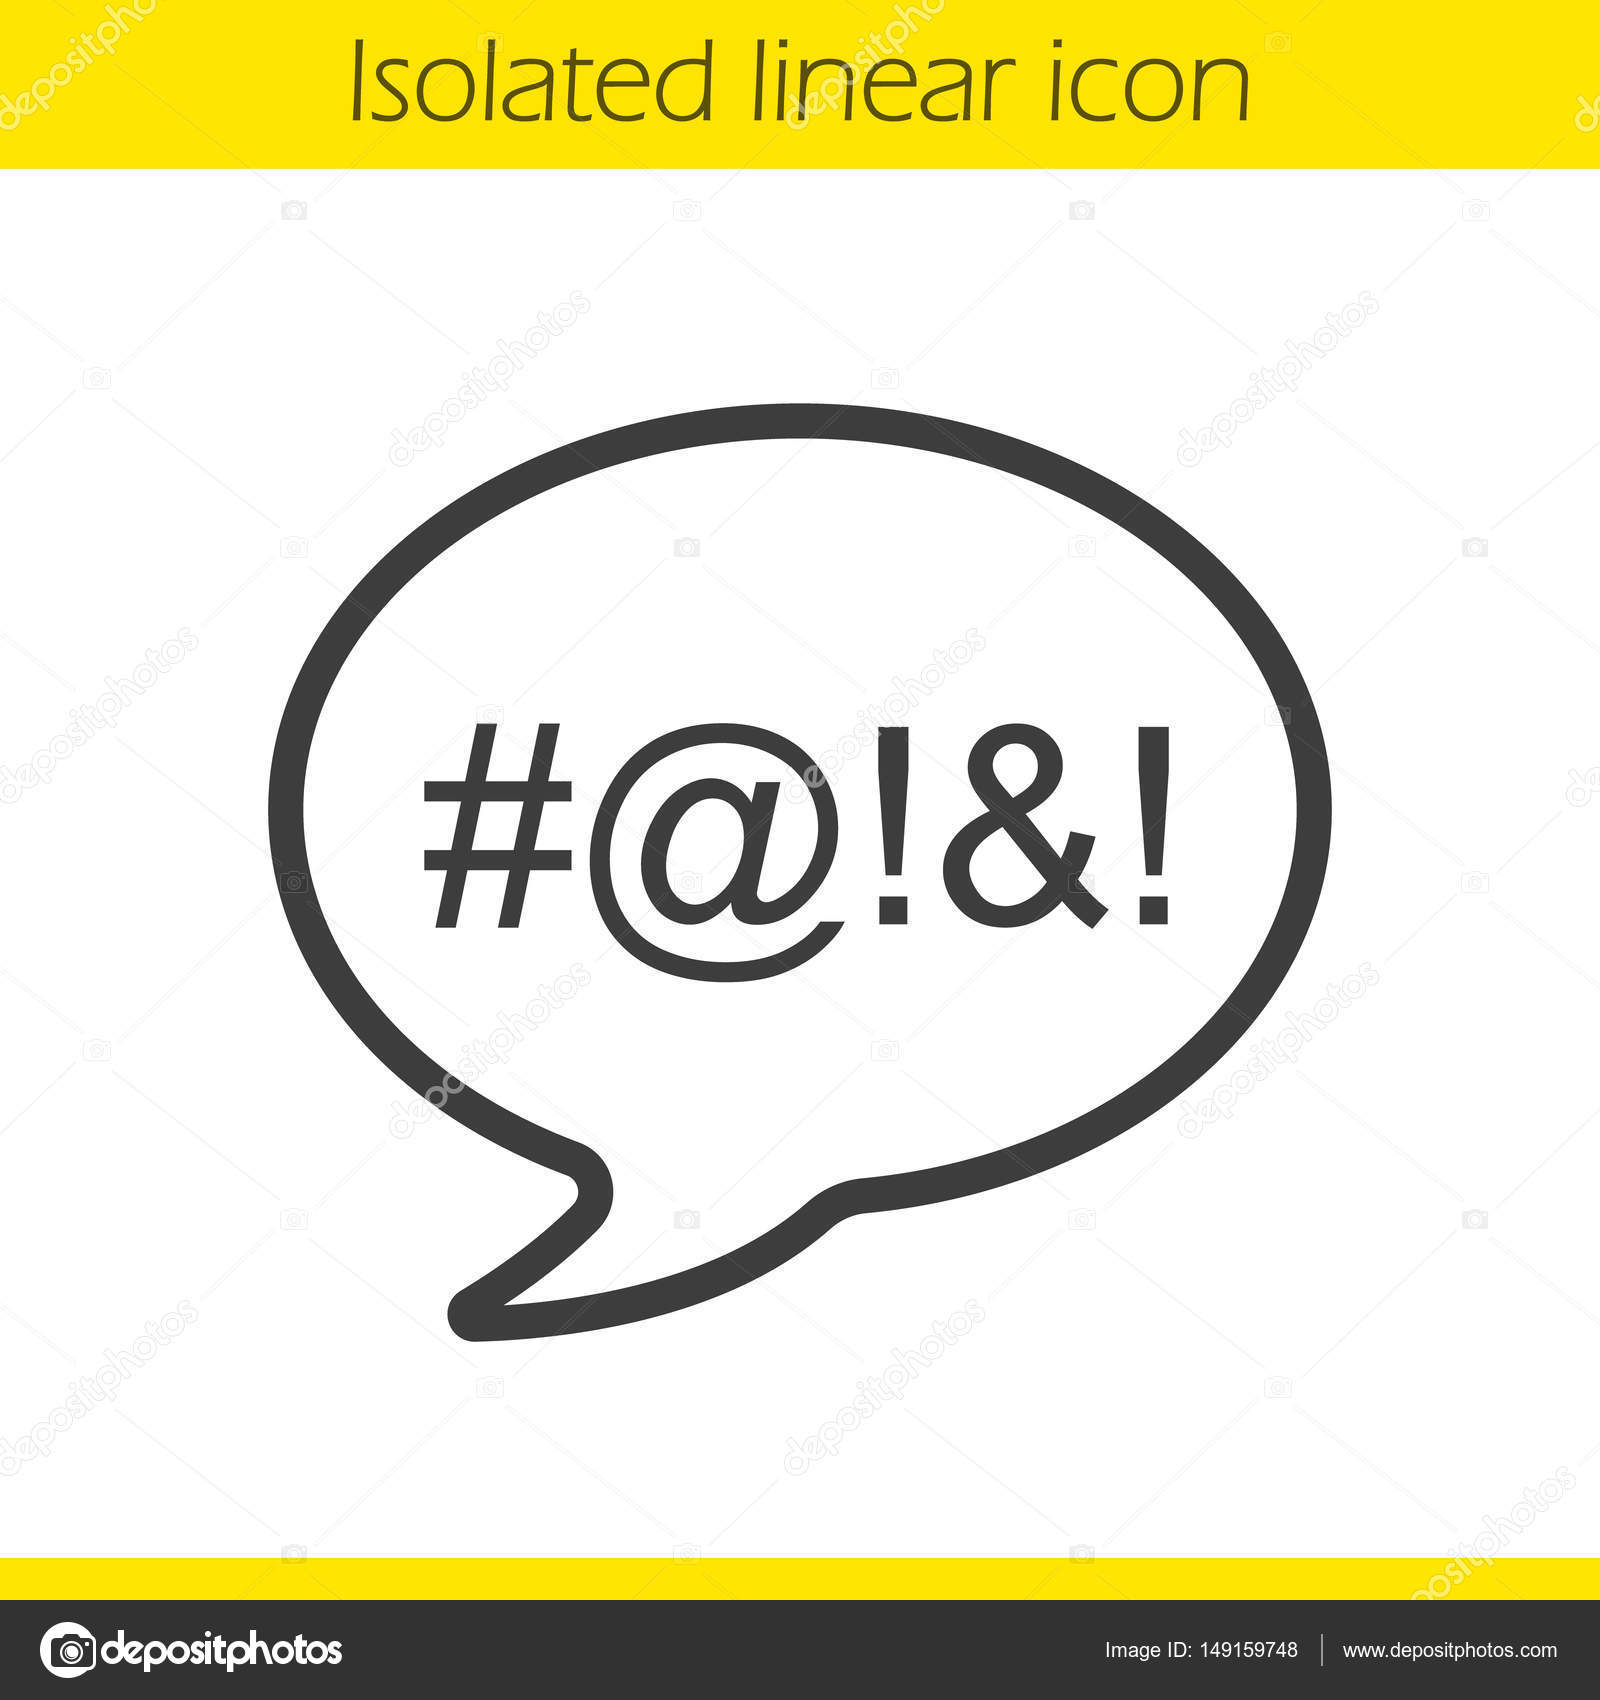 Dirty language linear icon stock vector bsd 149159748 dirty language linear icon cursing thin line illustration chat bubble with censored swearing words contour symbol vector isolated outline drawing biocorpaavc Choice Image